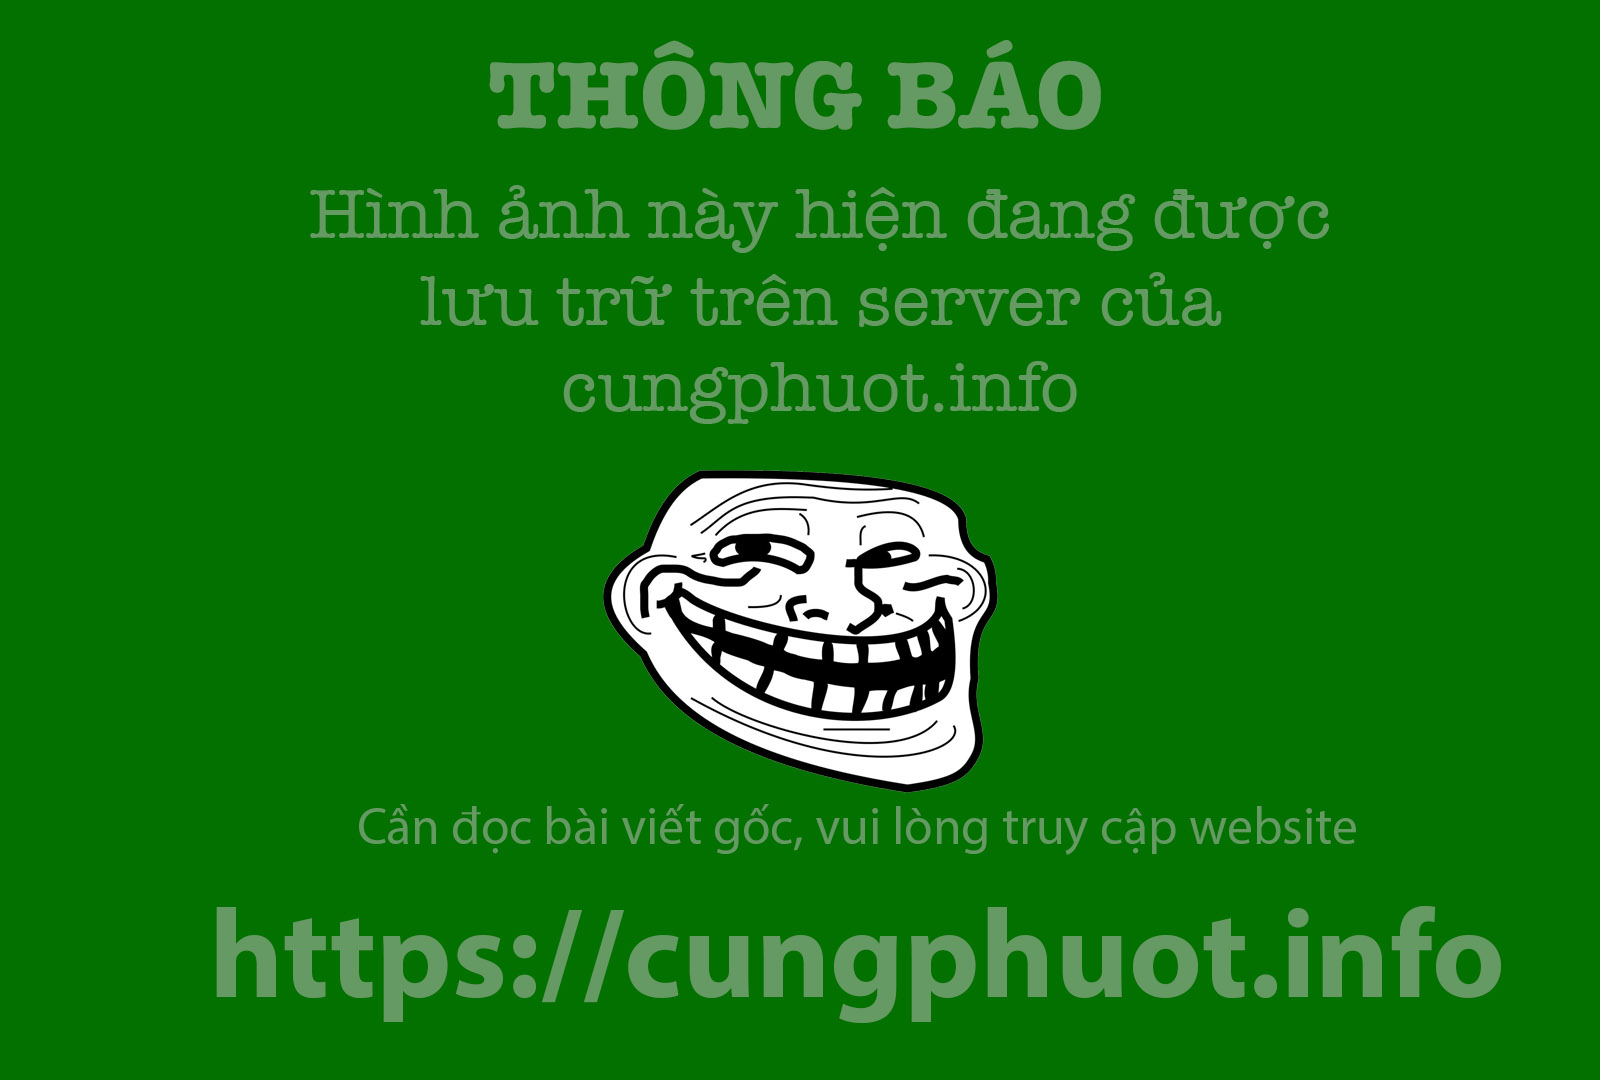 Mien Tay mua nuoc noi di mai chang het diem check-in hinh anh 4